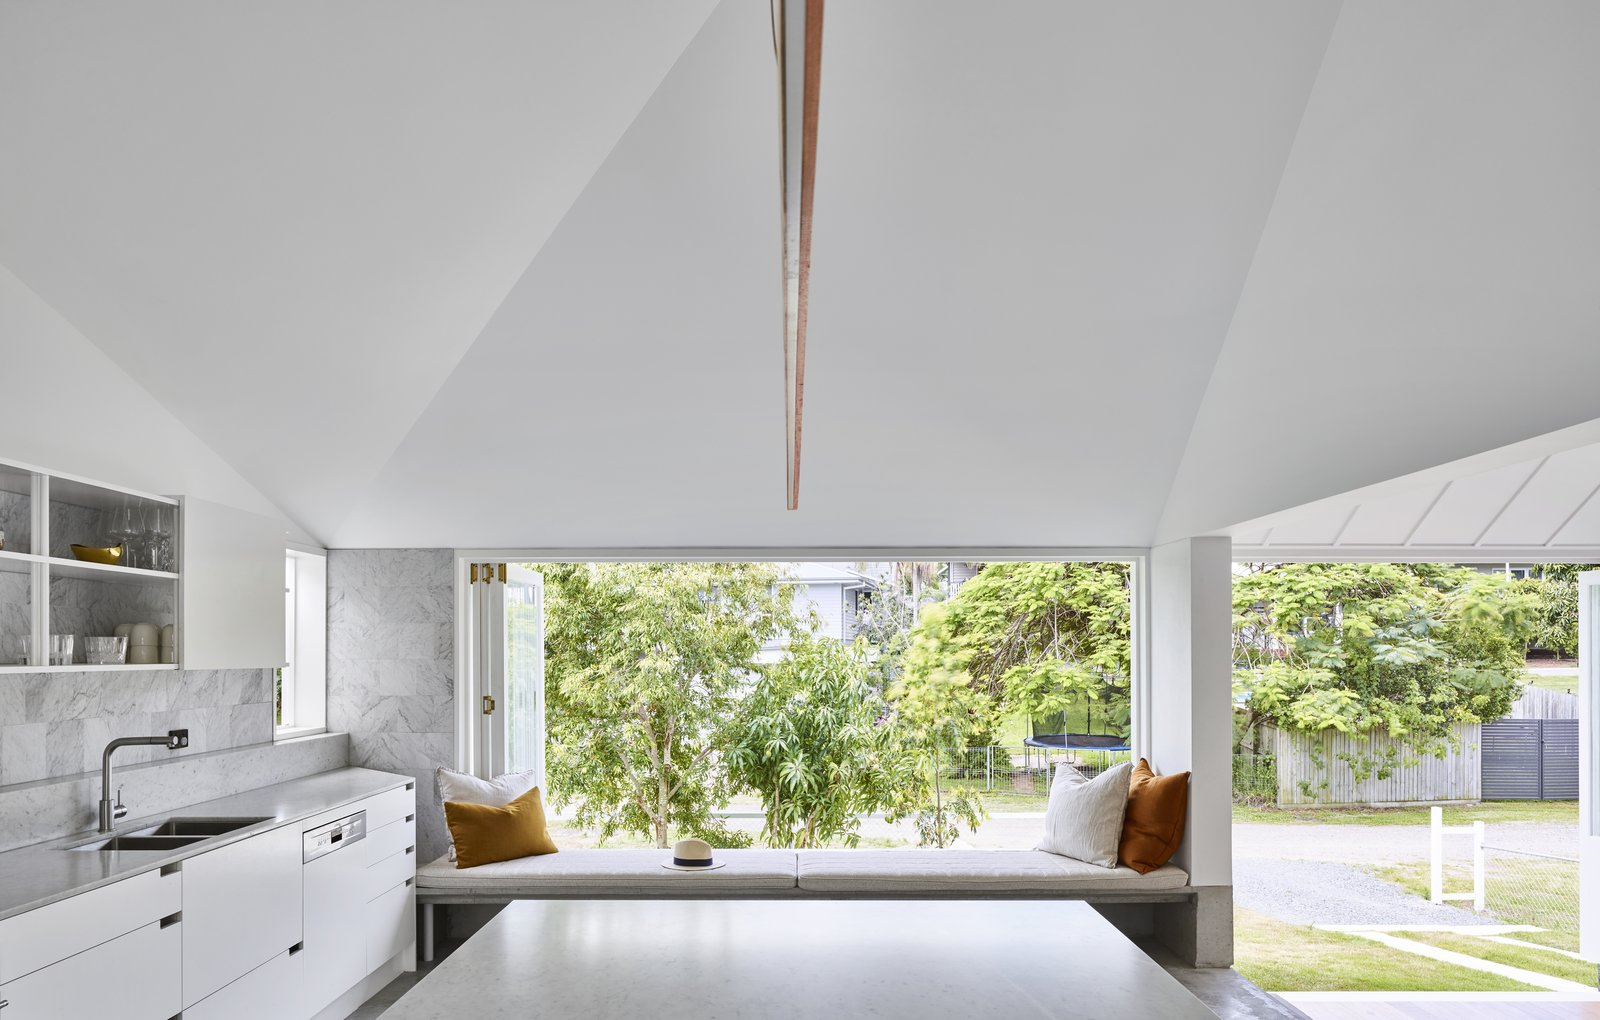 Kitchen, Marble Counter, White Cabinet, Concrete Floor, Dishwasher, Undermount Sink, Marble Backsplashe, and Pendant Lighting The kitchen window-seat overlooks the backyard garden.    Photo 5 of 12 in A Small Australian Cottage Becomes an Airy Gathering Hub